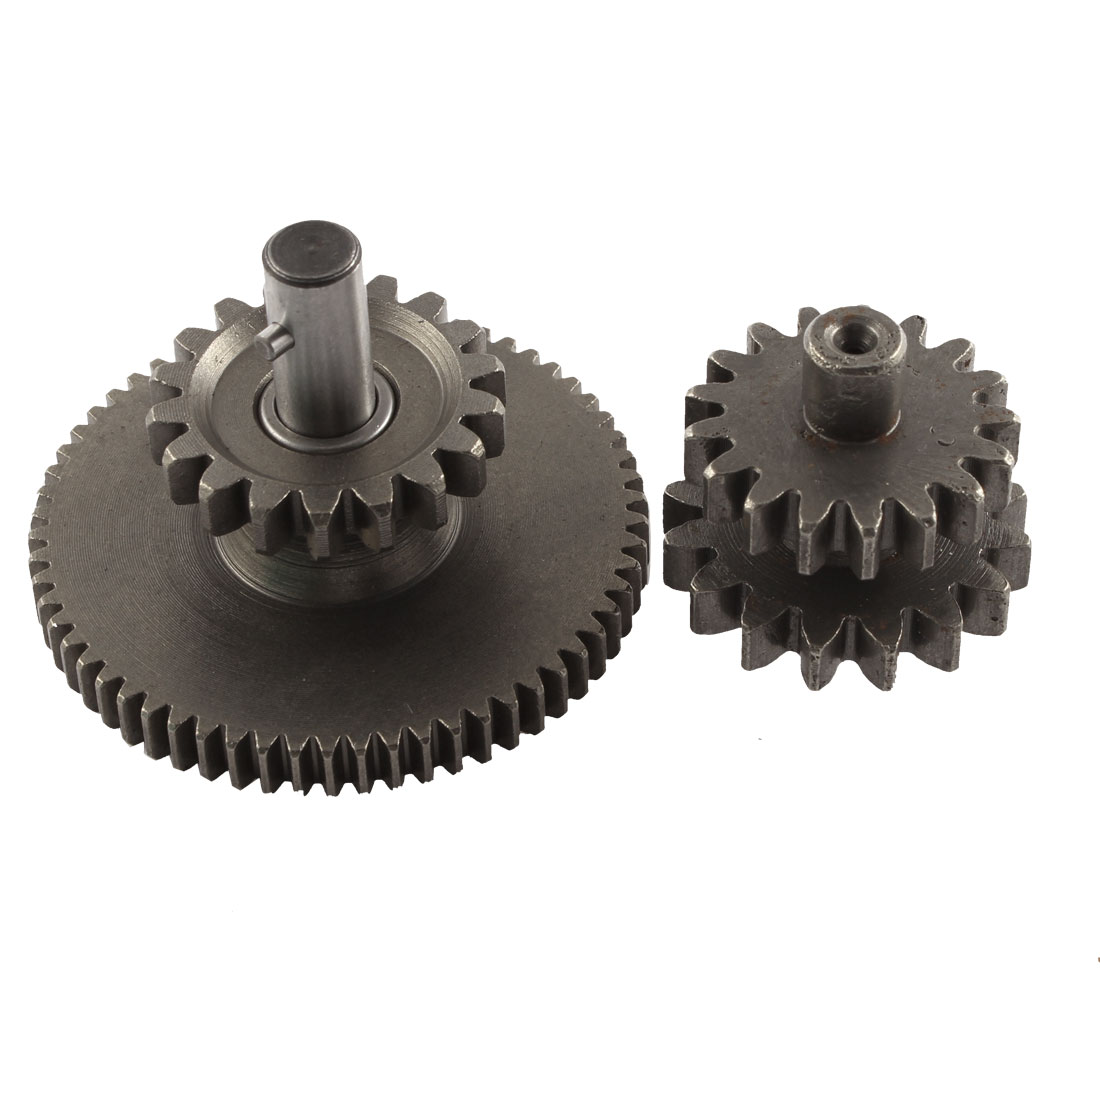 62mm Dia Motorcycle Transmission Gears Shafts Shift for CG125